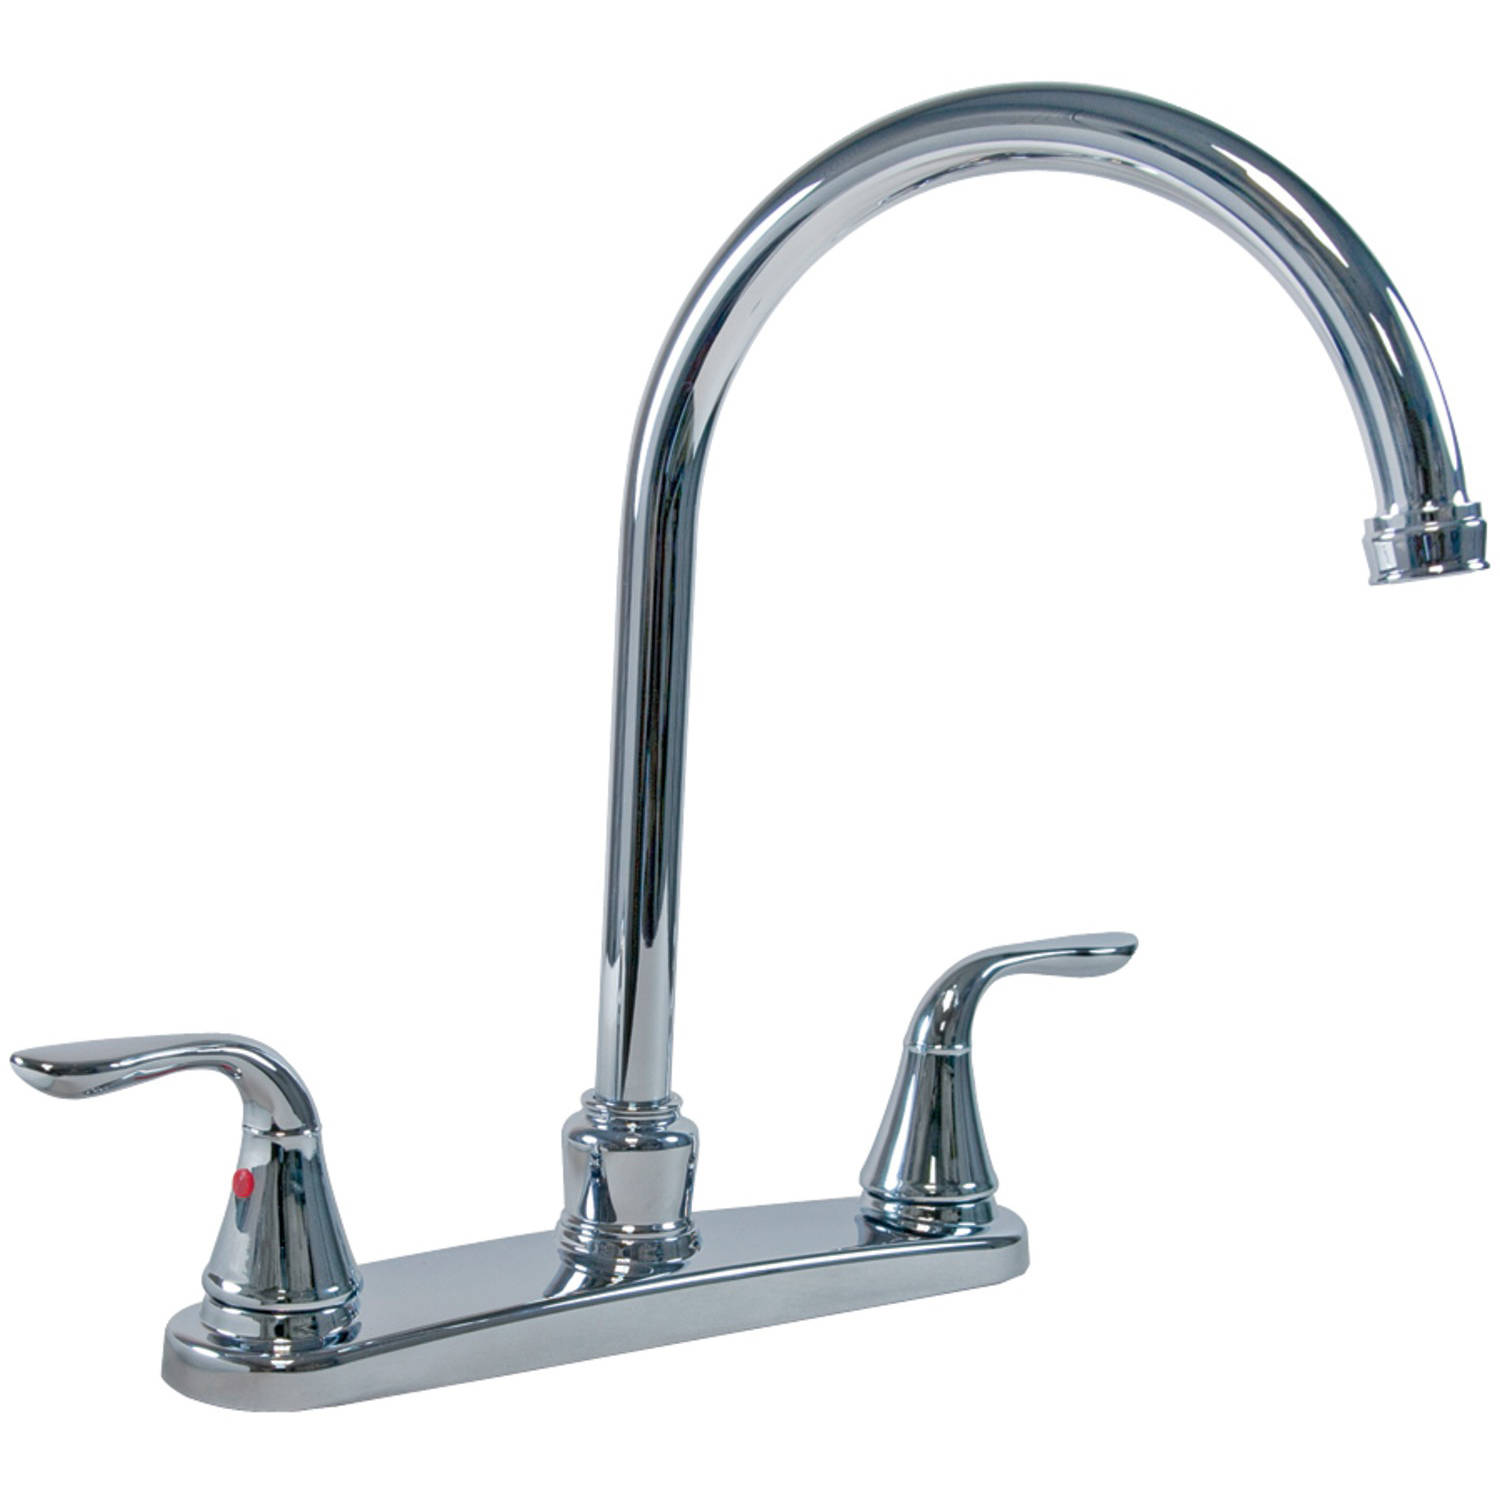 Aqua Plumb 1558030 Chrome Plated 2 Handle Gooseneck Kitchen Faucet    Walmart.com